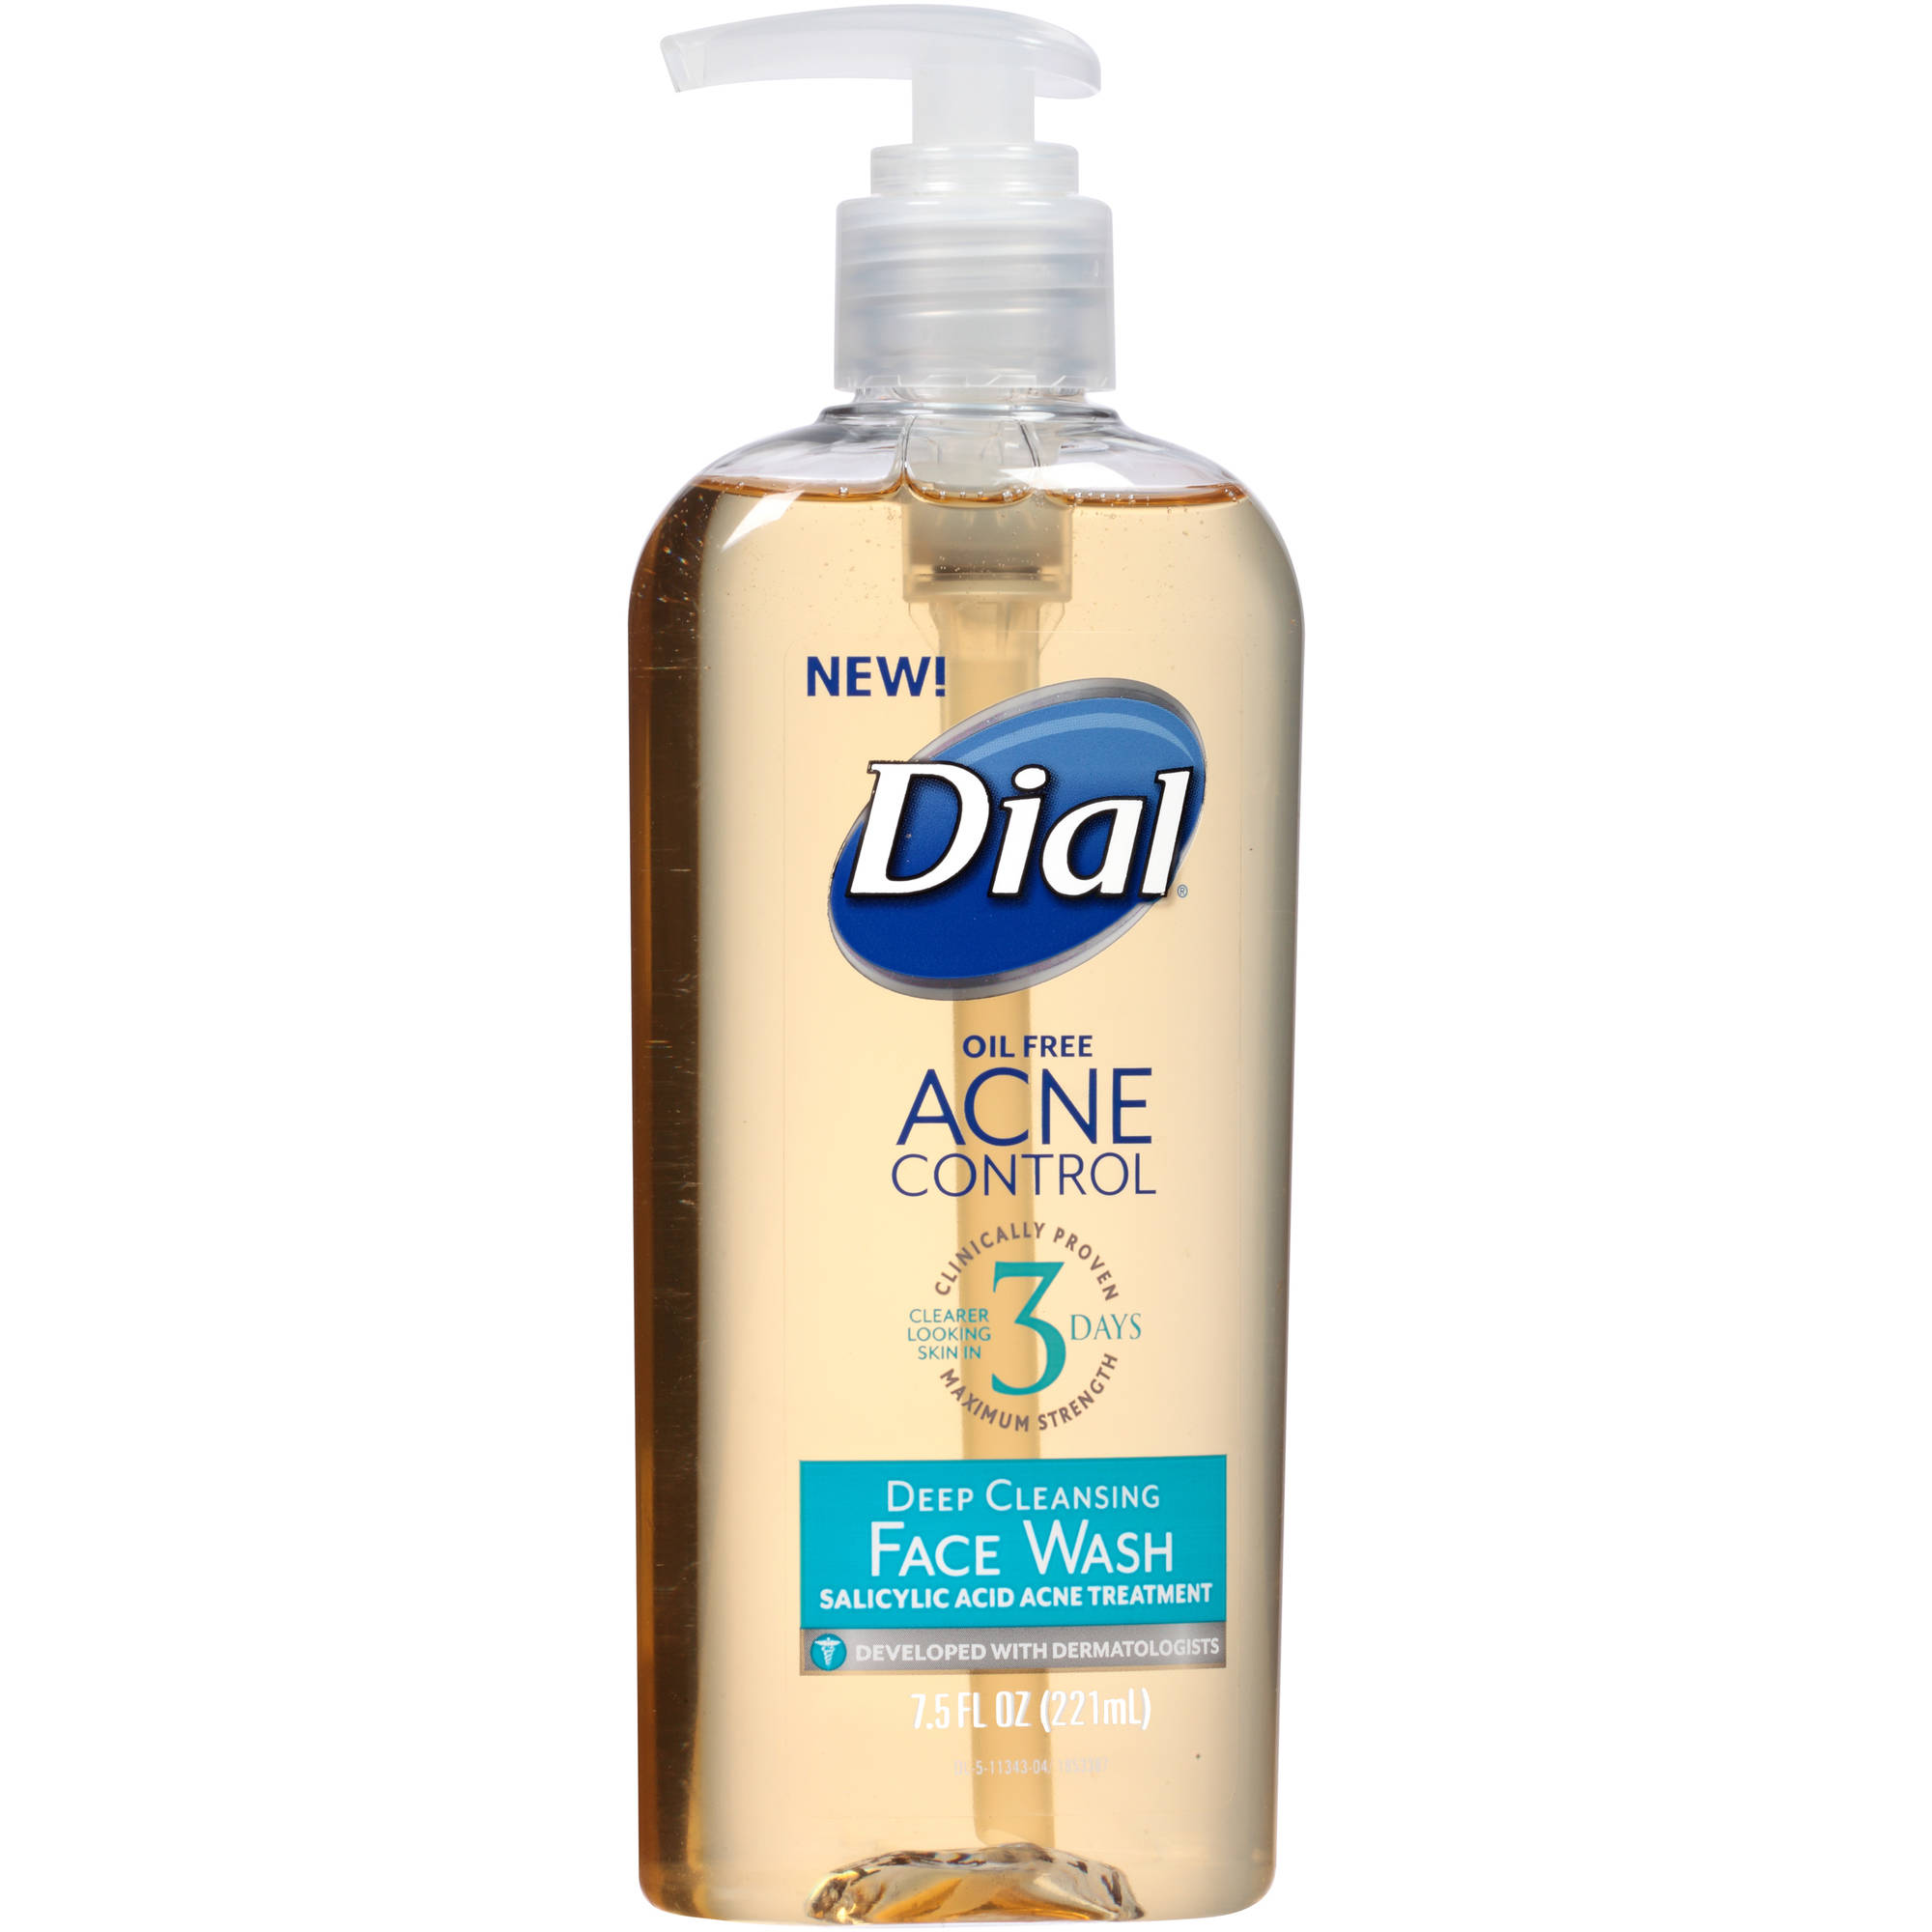 Dial Acne Control Deep Cleansing Face Wash, 7.5 fl oz